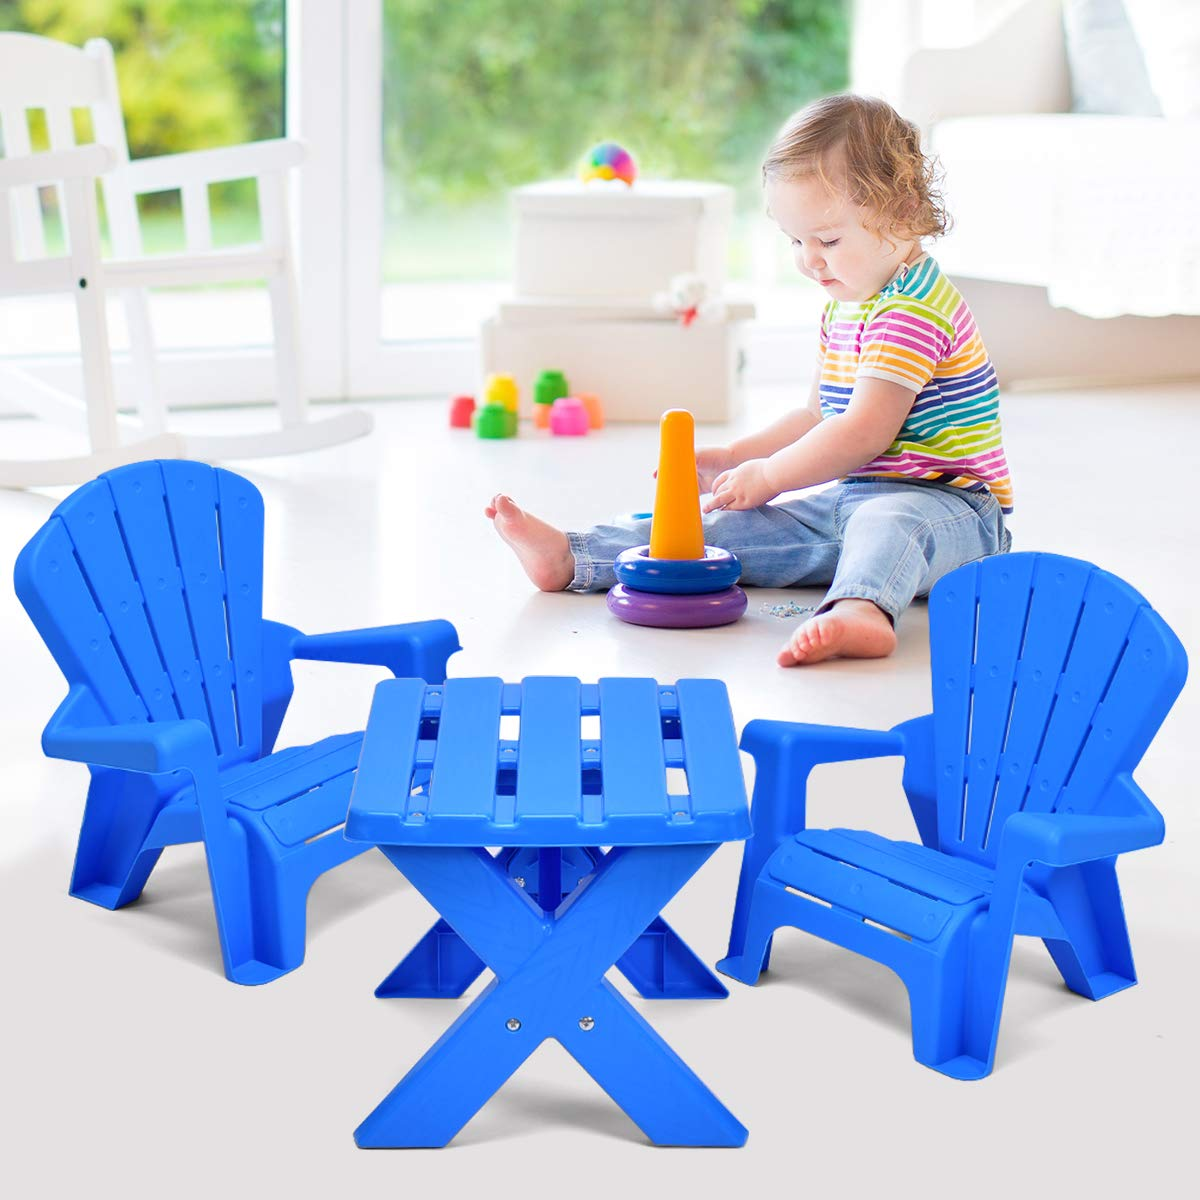 Fantastic Costzon Kids Plastic Table And 2 Chairs Set Adirondack Chair For Indoor Outdoor Garden Patio Beach Home Toddlers Boys Girls Activity Craft Evergreenethics Interior Chair Design Evergreenethicsorg